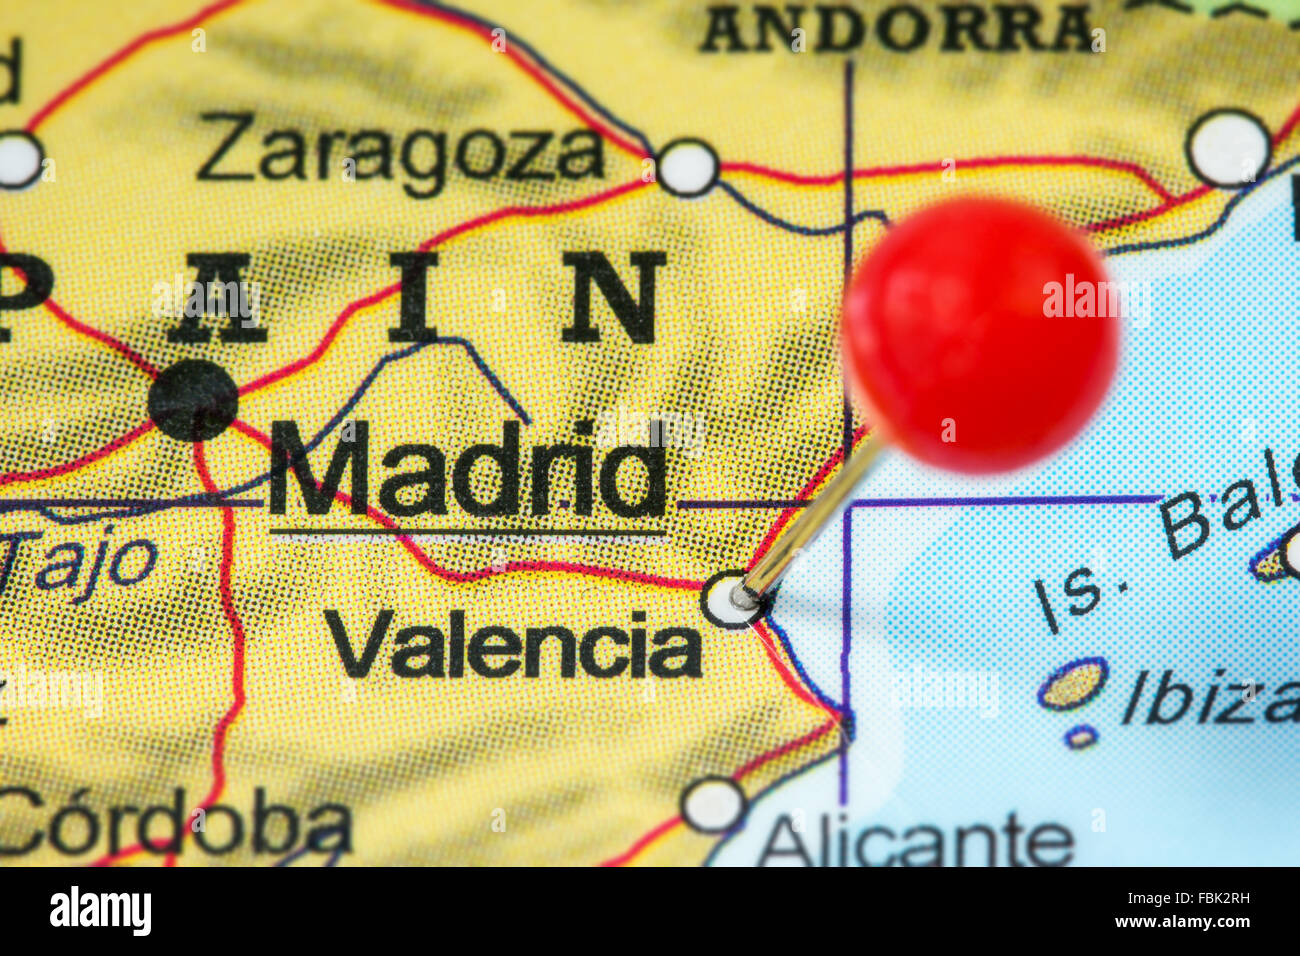 Valencia Map Of Spain.Close Up Of A Red Pushpin In A Map Of Valencia Spain Stock Photo